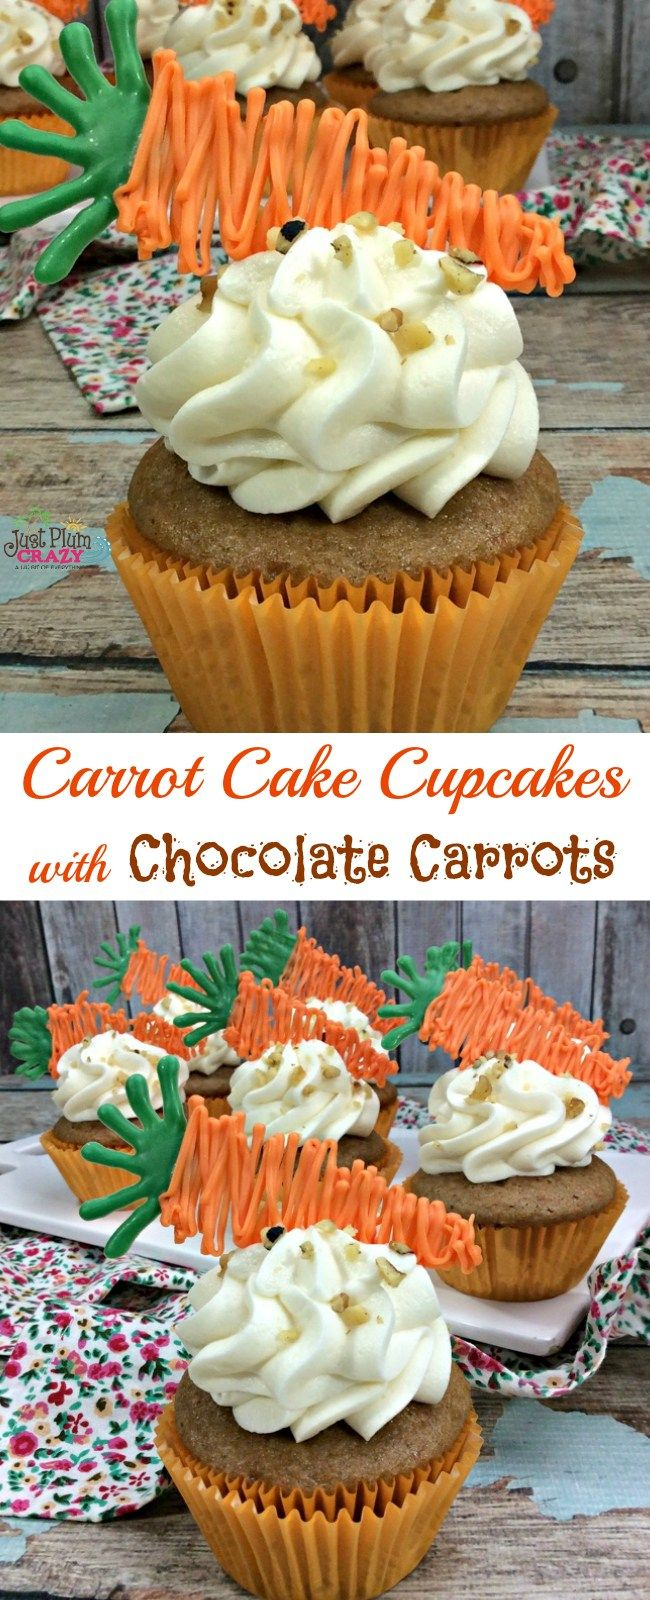 Carrot cake isn't only for Easter, but since it's early this year, we are sharing a Carrot Cake Cupcakes Recipe with Chocolate Carrots. In honor of National Carrot Cake day, we thought it fitting to share the perfect recipe for it.